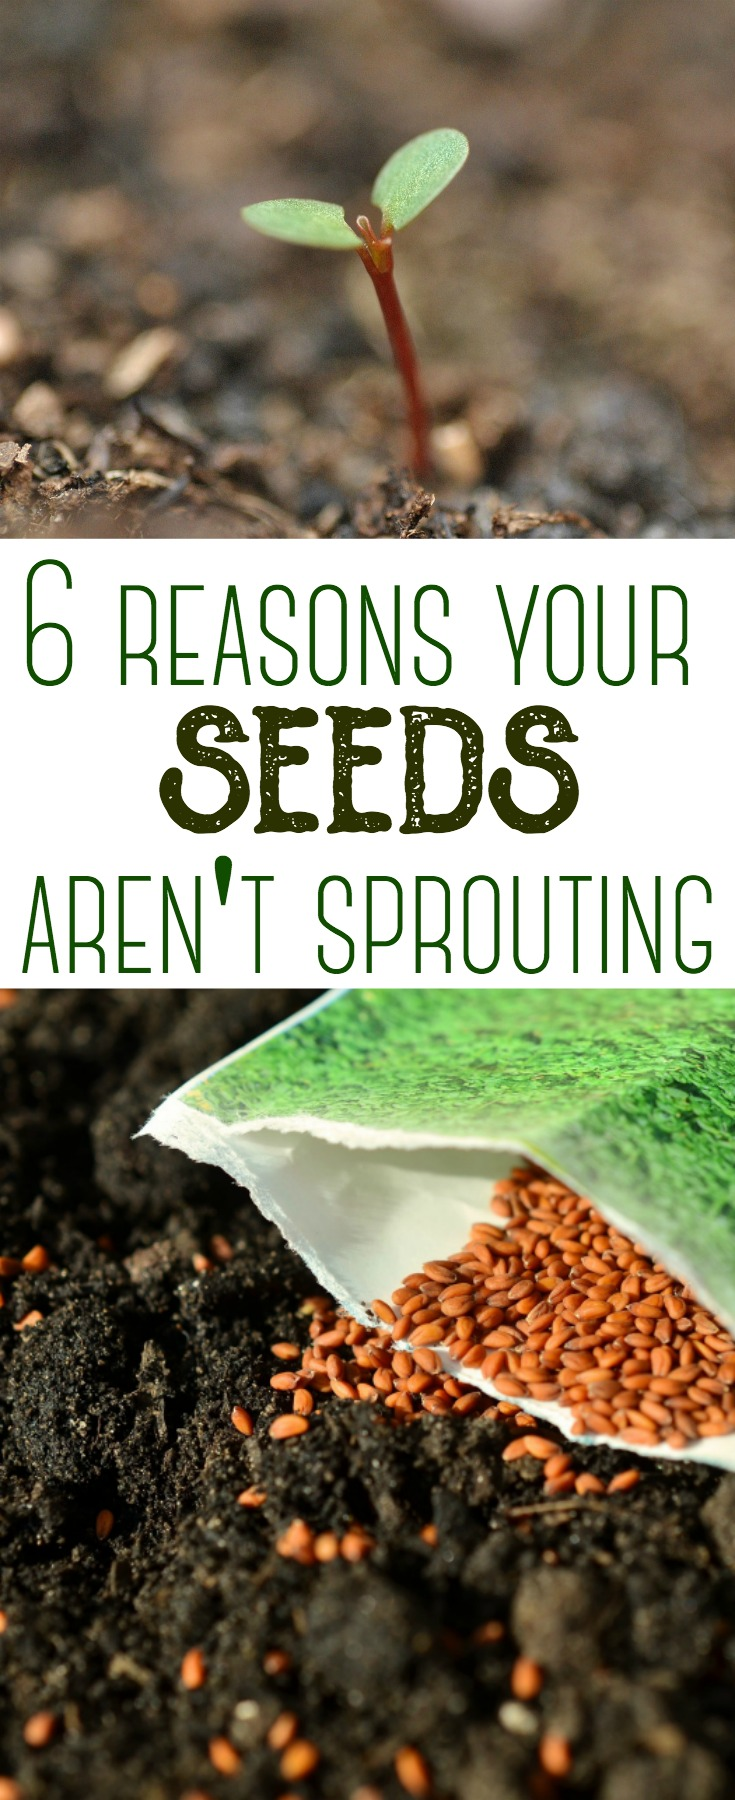 Planting seeds is one of the first steps to having a successful garden. But sometimes they can be tricky to use! Here are 6 reasons your seeds may not be sprouting in your garden. #gardening #seeds #backyardgardening